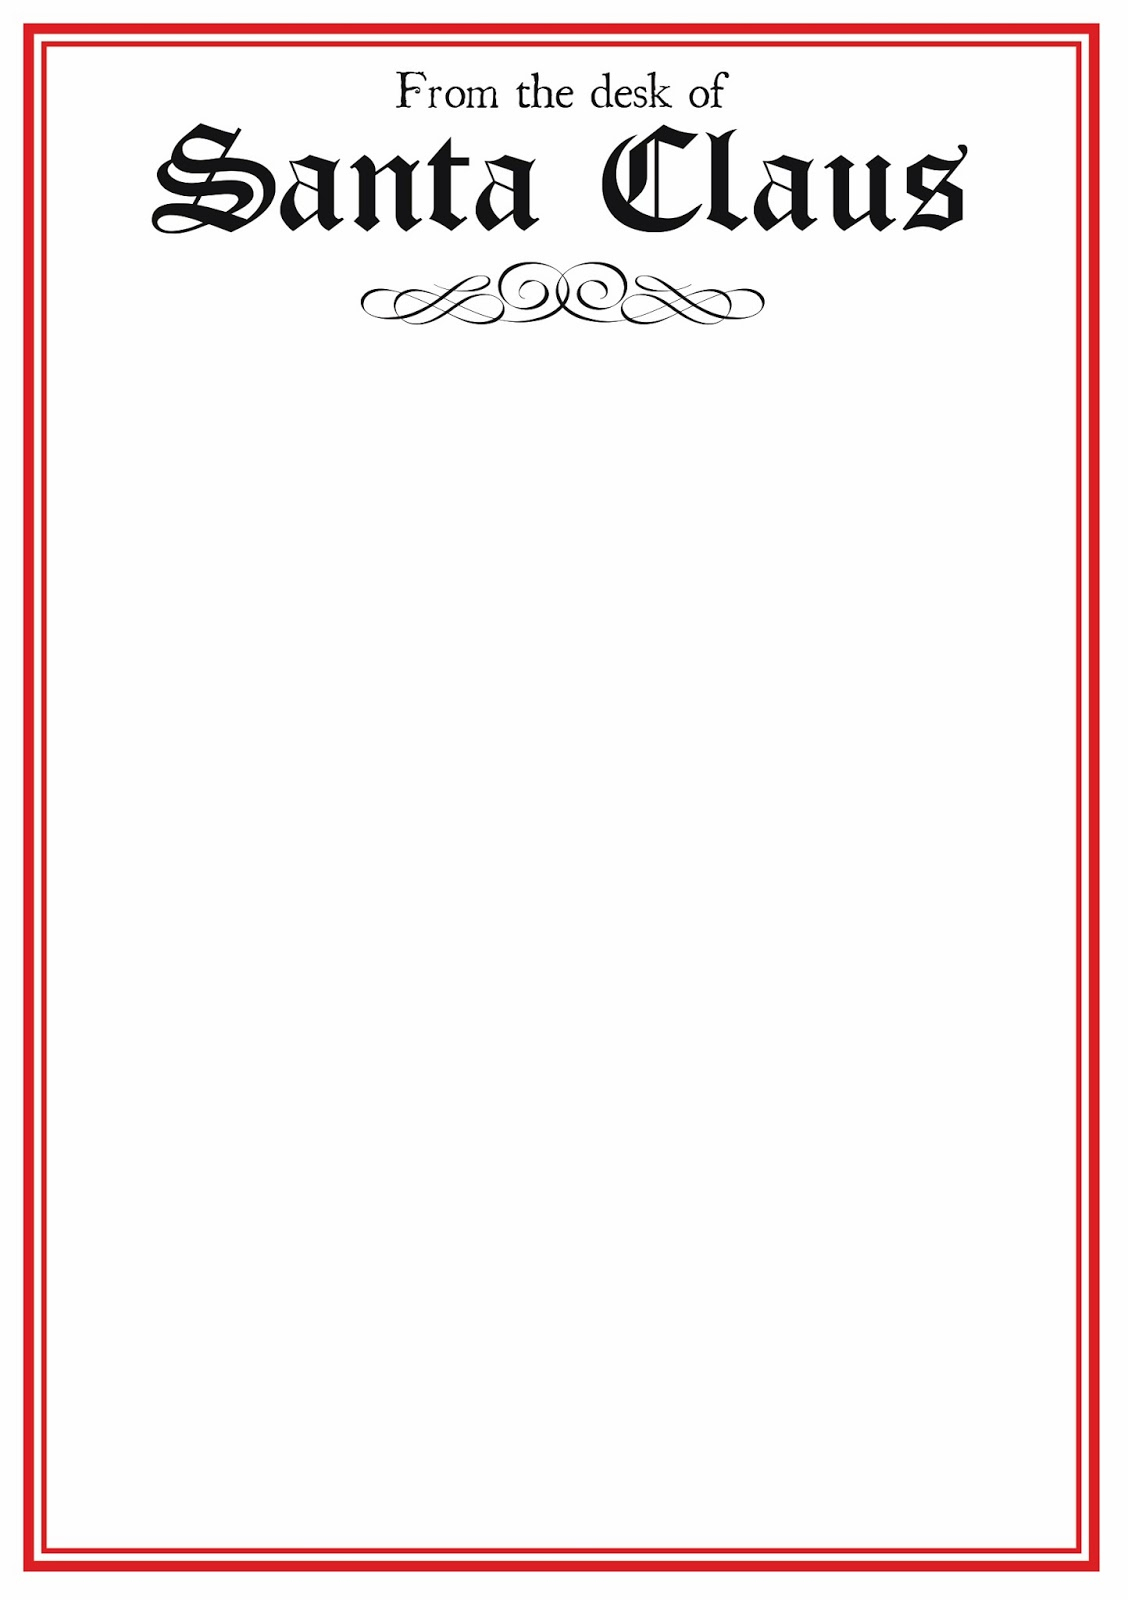 Free Printable Letter From Santa Word Template Samples | Letter - Free Printable Letter From Santa Template